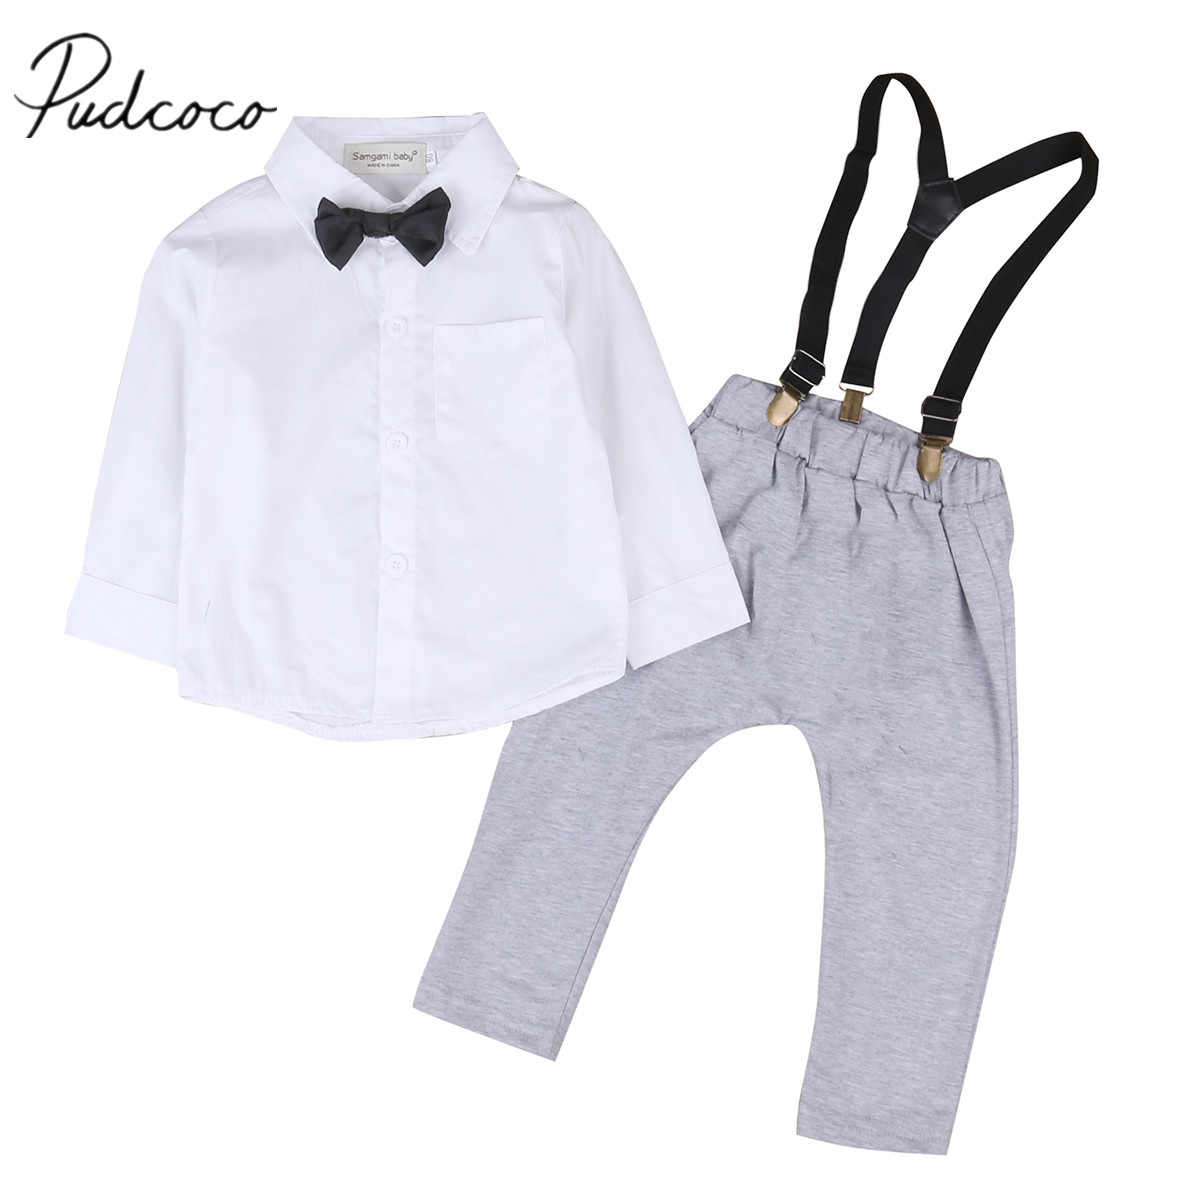 0807a480a Detail Feedback Questions about 2018 Brand New Toddler Baby Boy Formal  Casual Clothes Sets 2PCS Long Sleeve Solid White Shirts Tops Grey Overall  Bib Pants ...